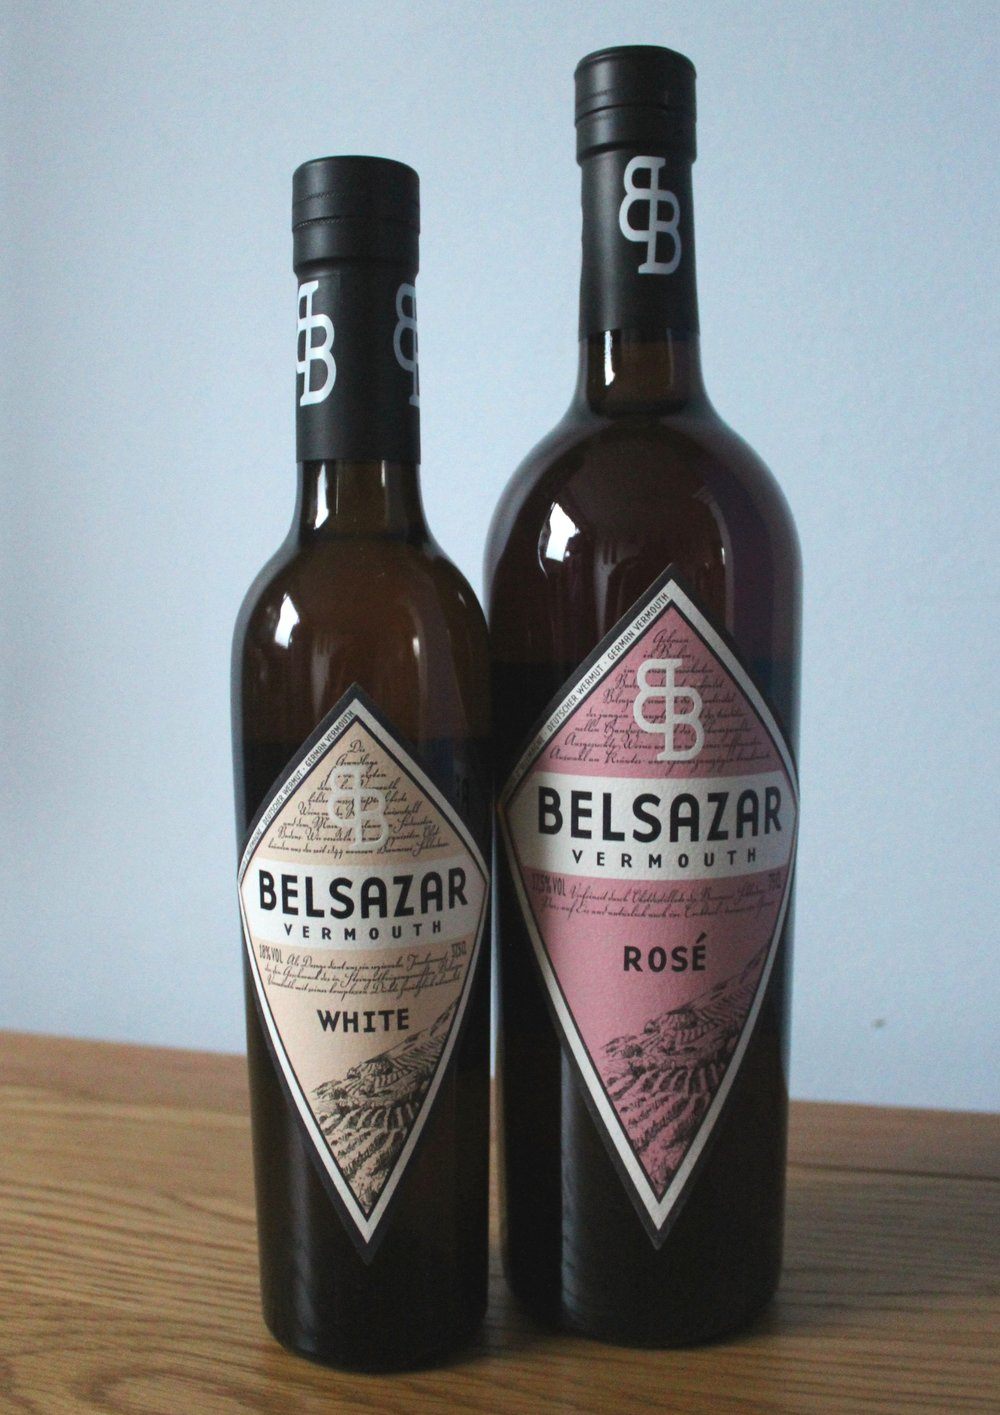 Belsazar Vermouth low alcohol